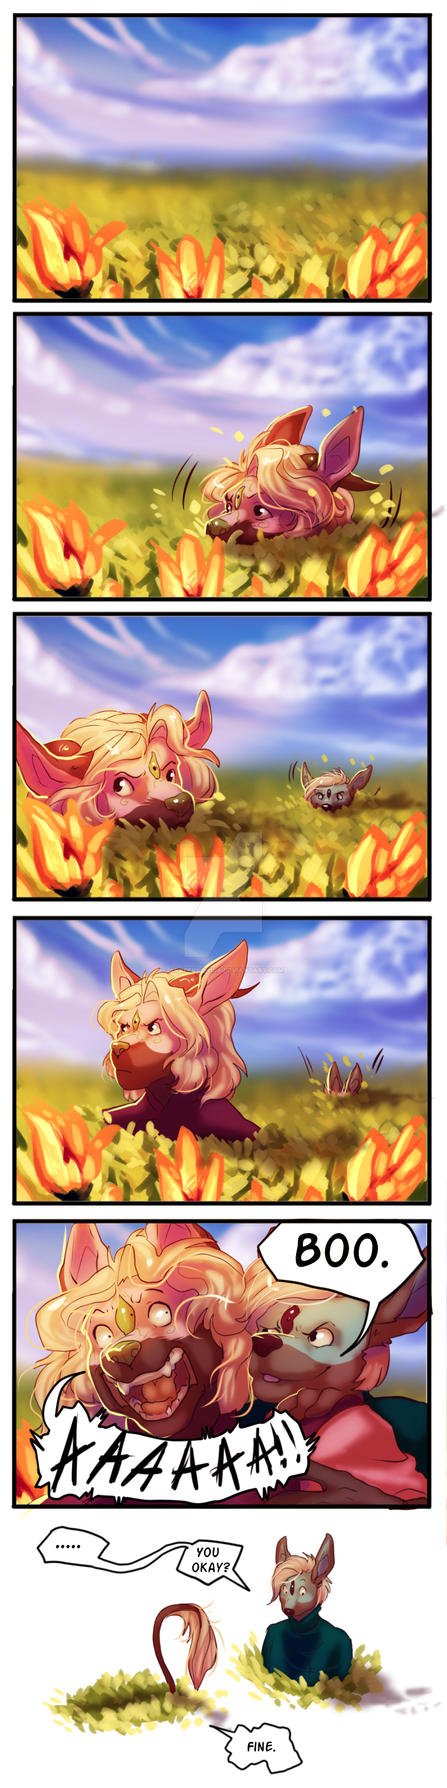 Flower Chasing - Guest Comic by AraPersonica